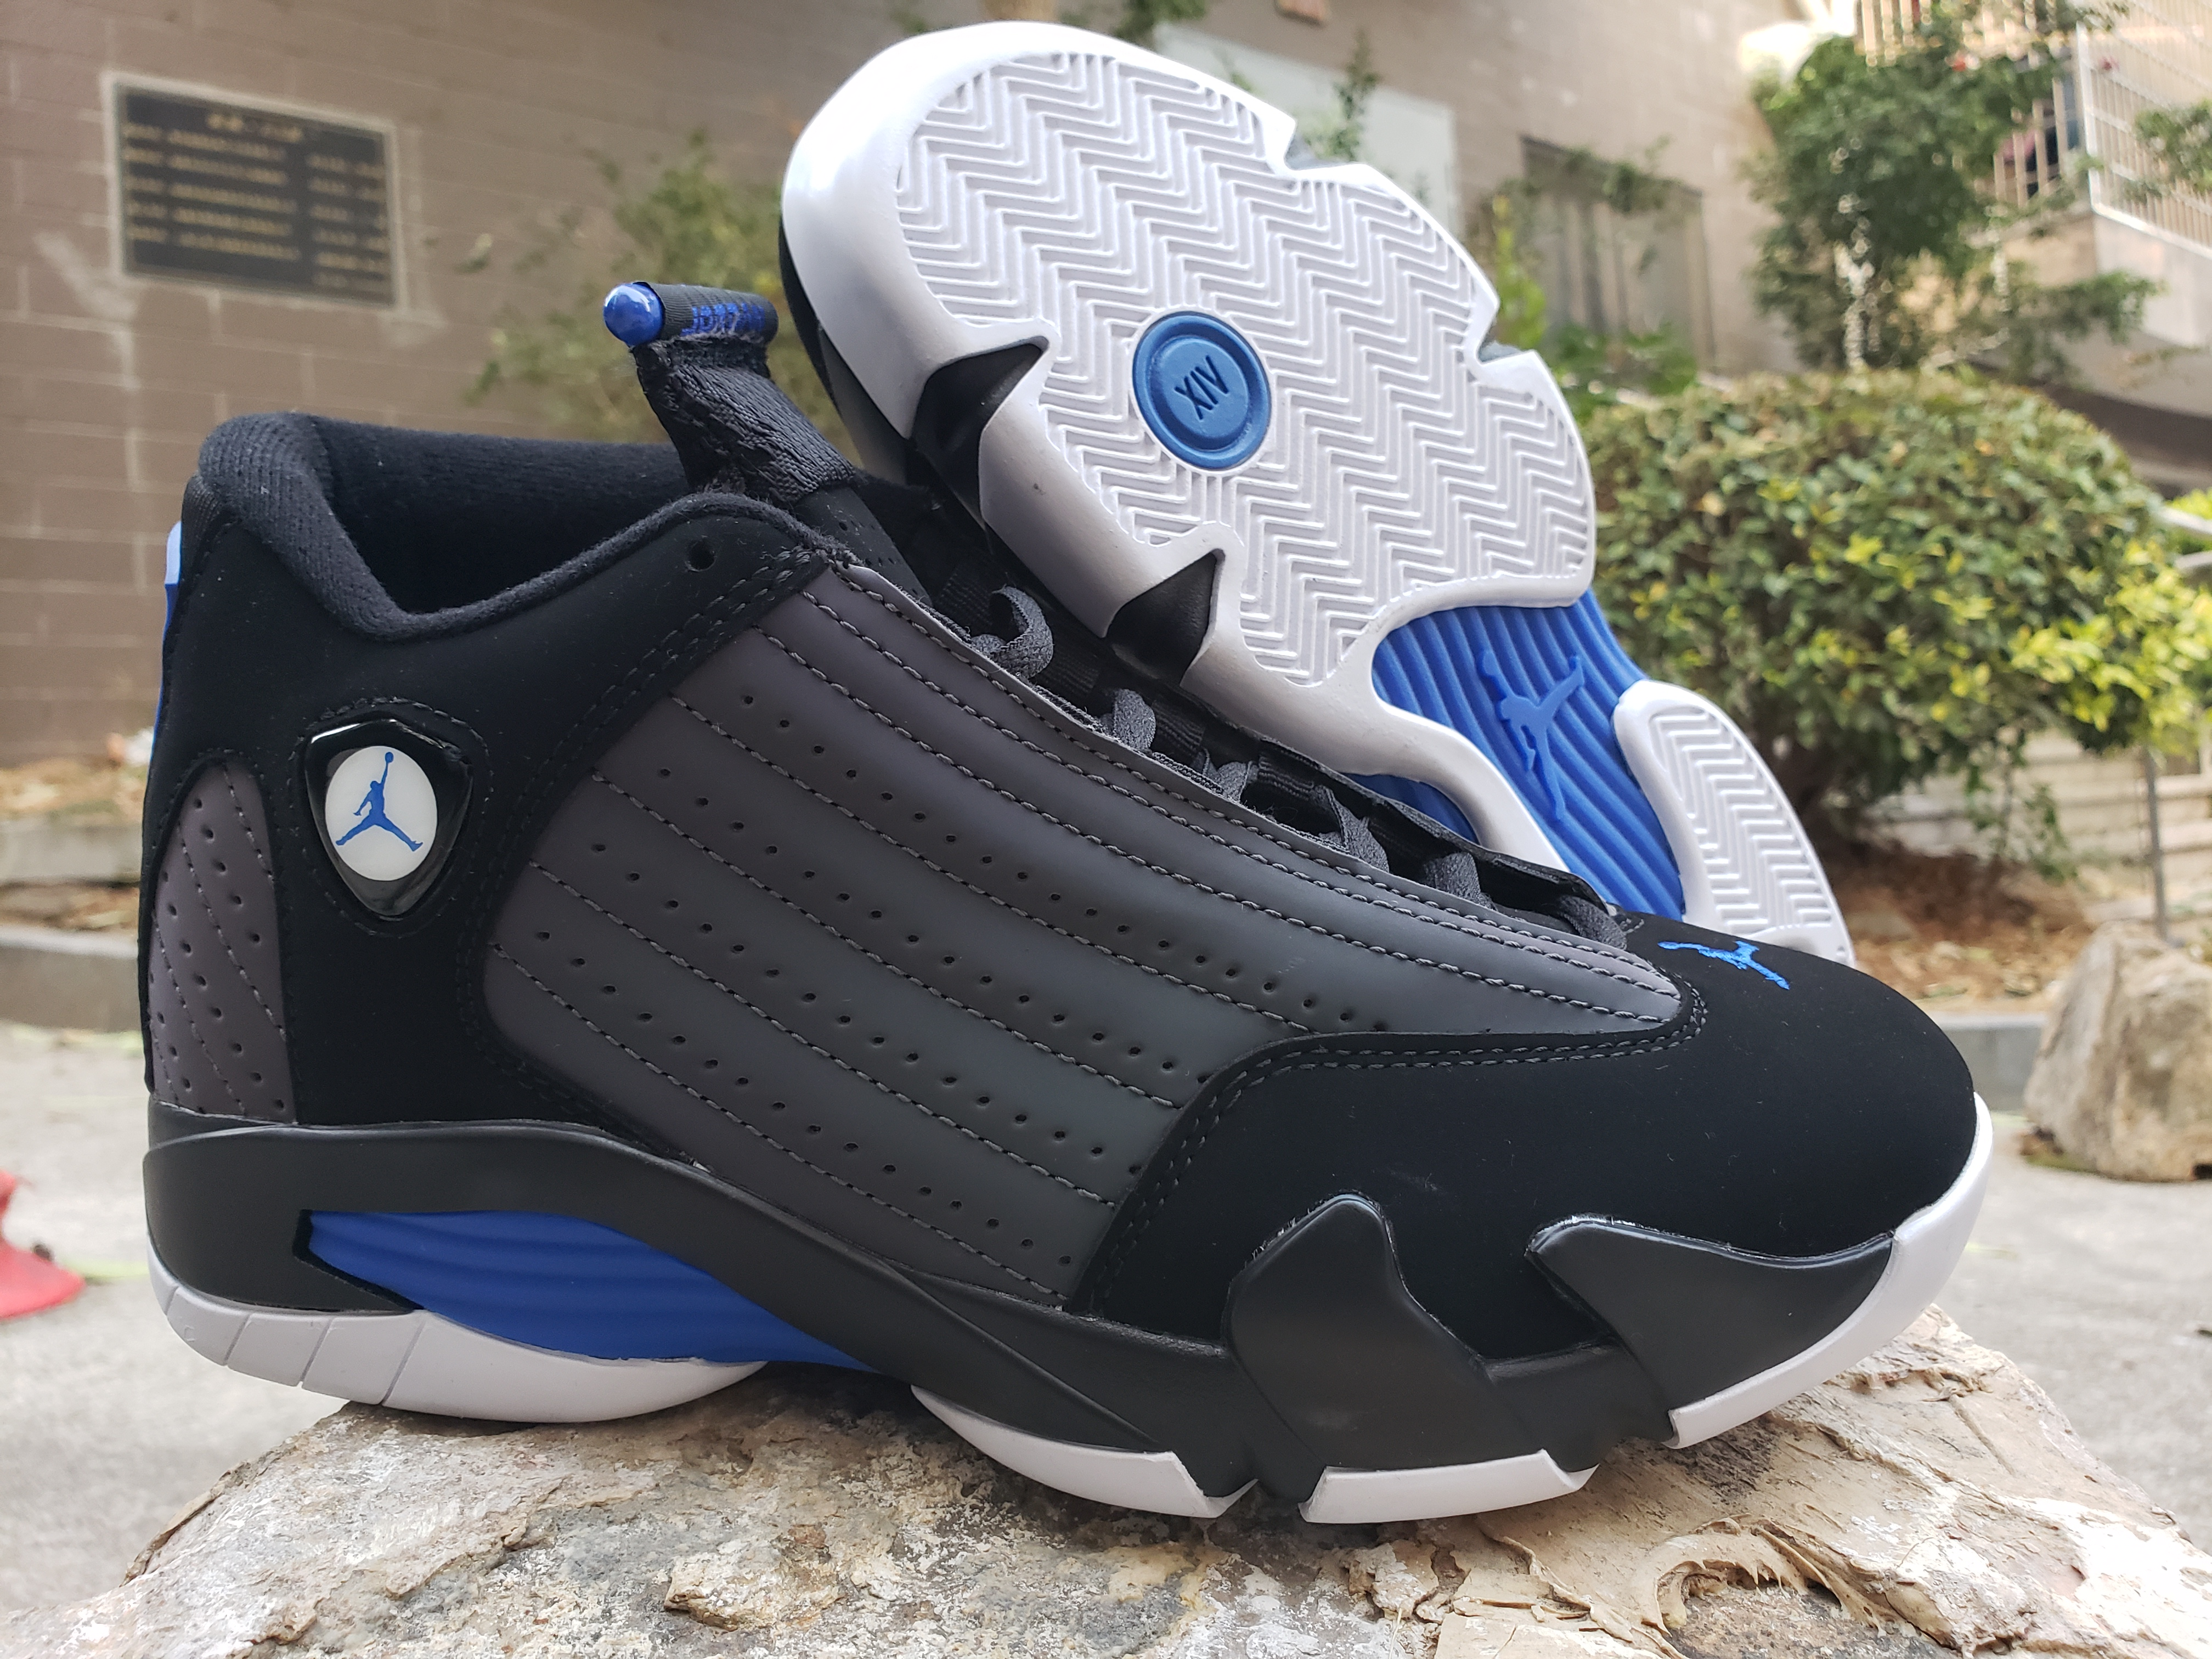 2020 Air Jordan 14 Retro Black Blue Shoes